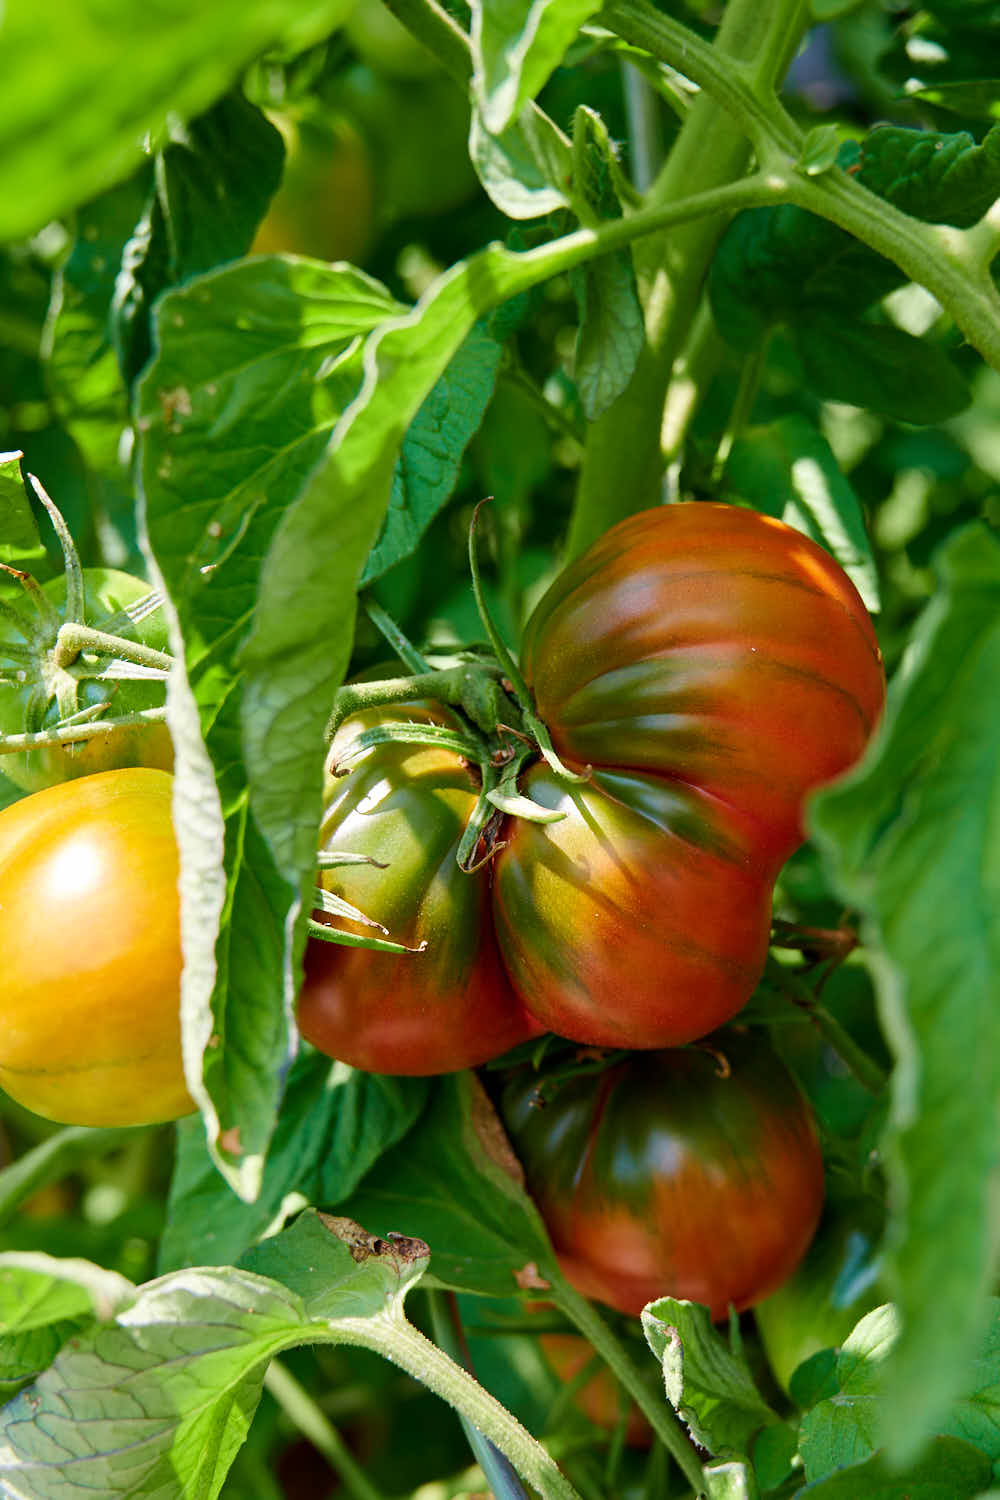 Indian Stripe tomatoes growing on the vine.